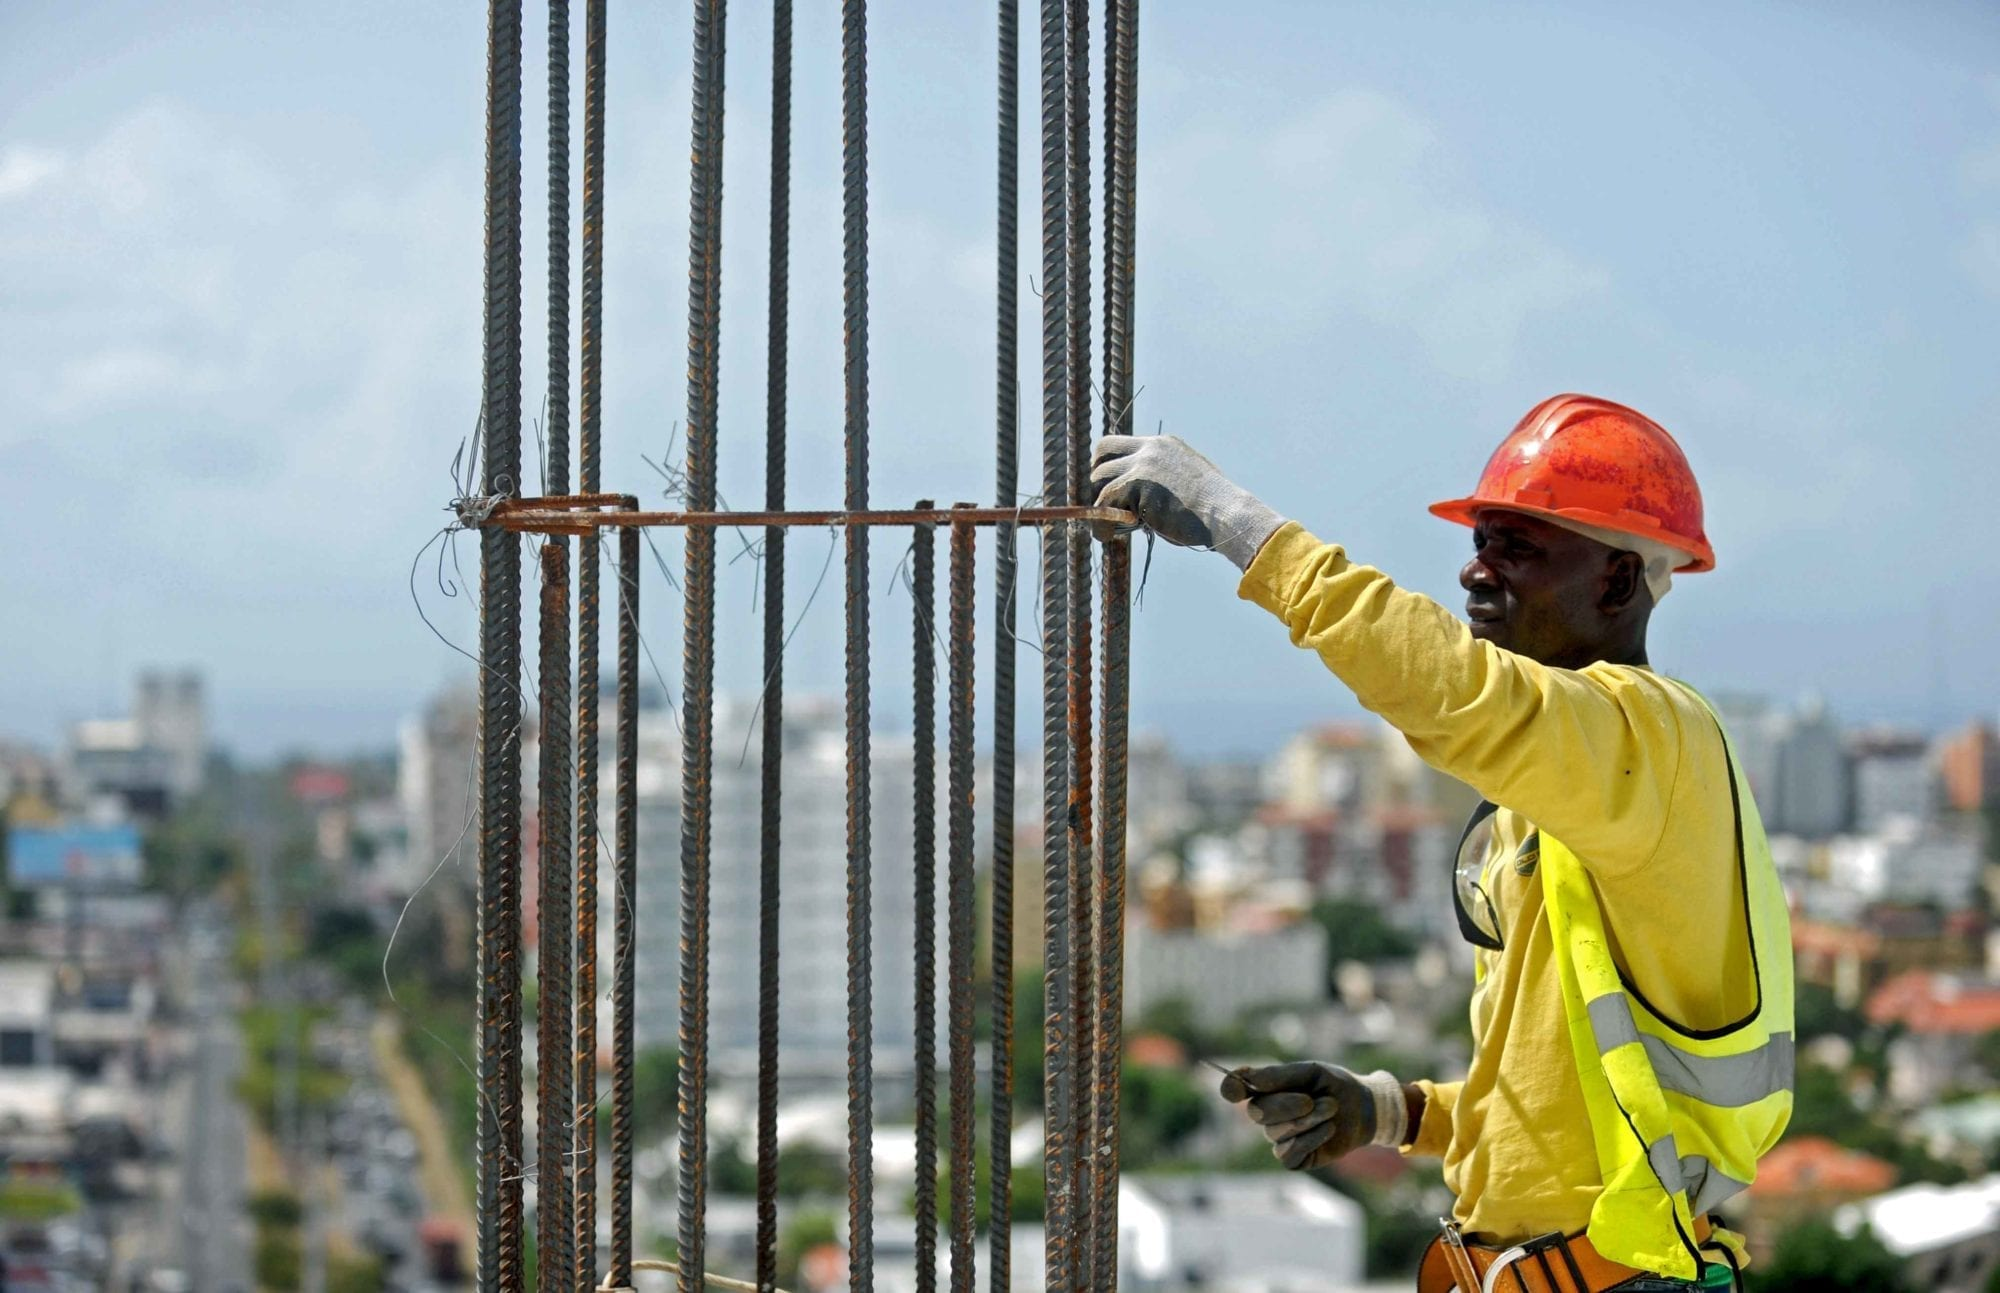 Migrant worker in the Dominican Republic working in construction